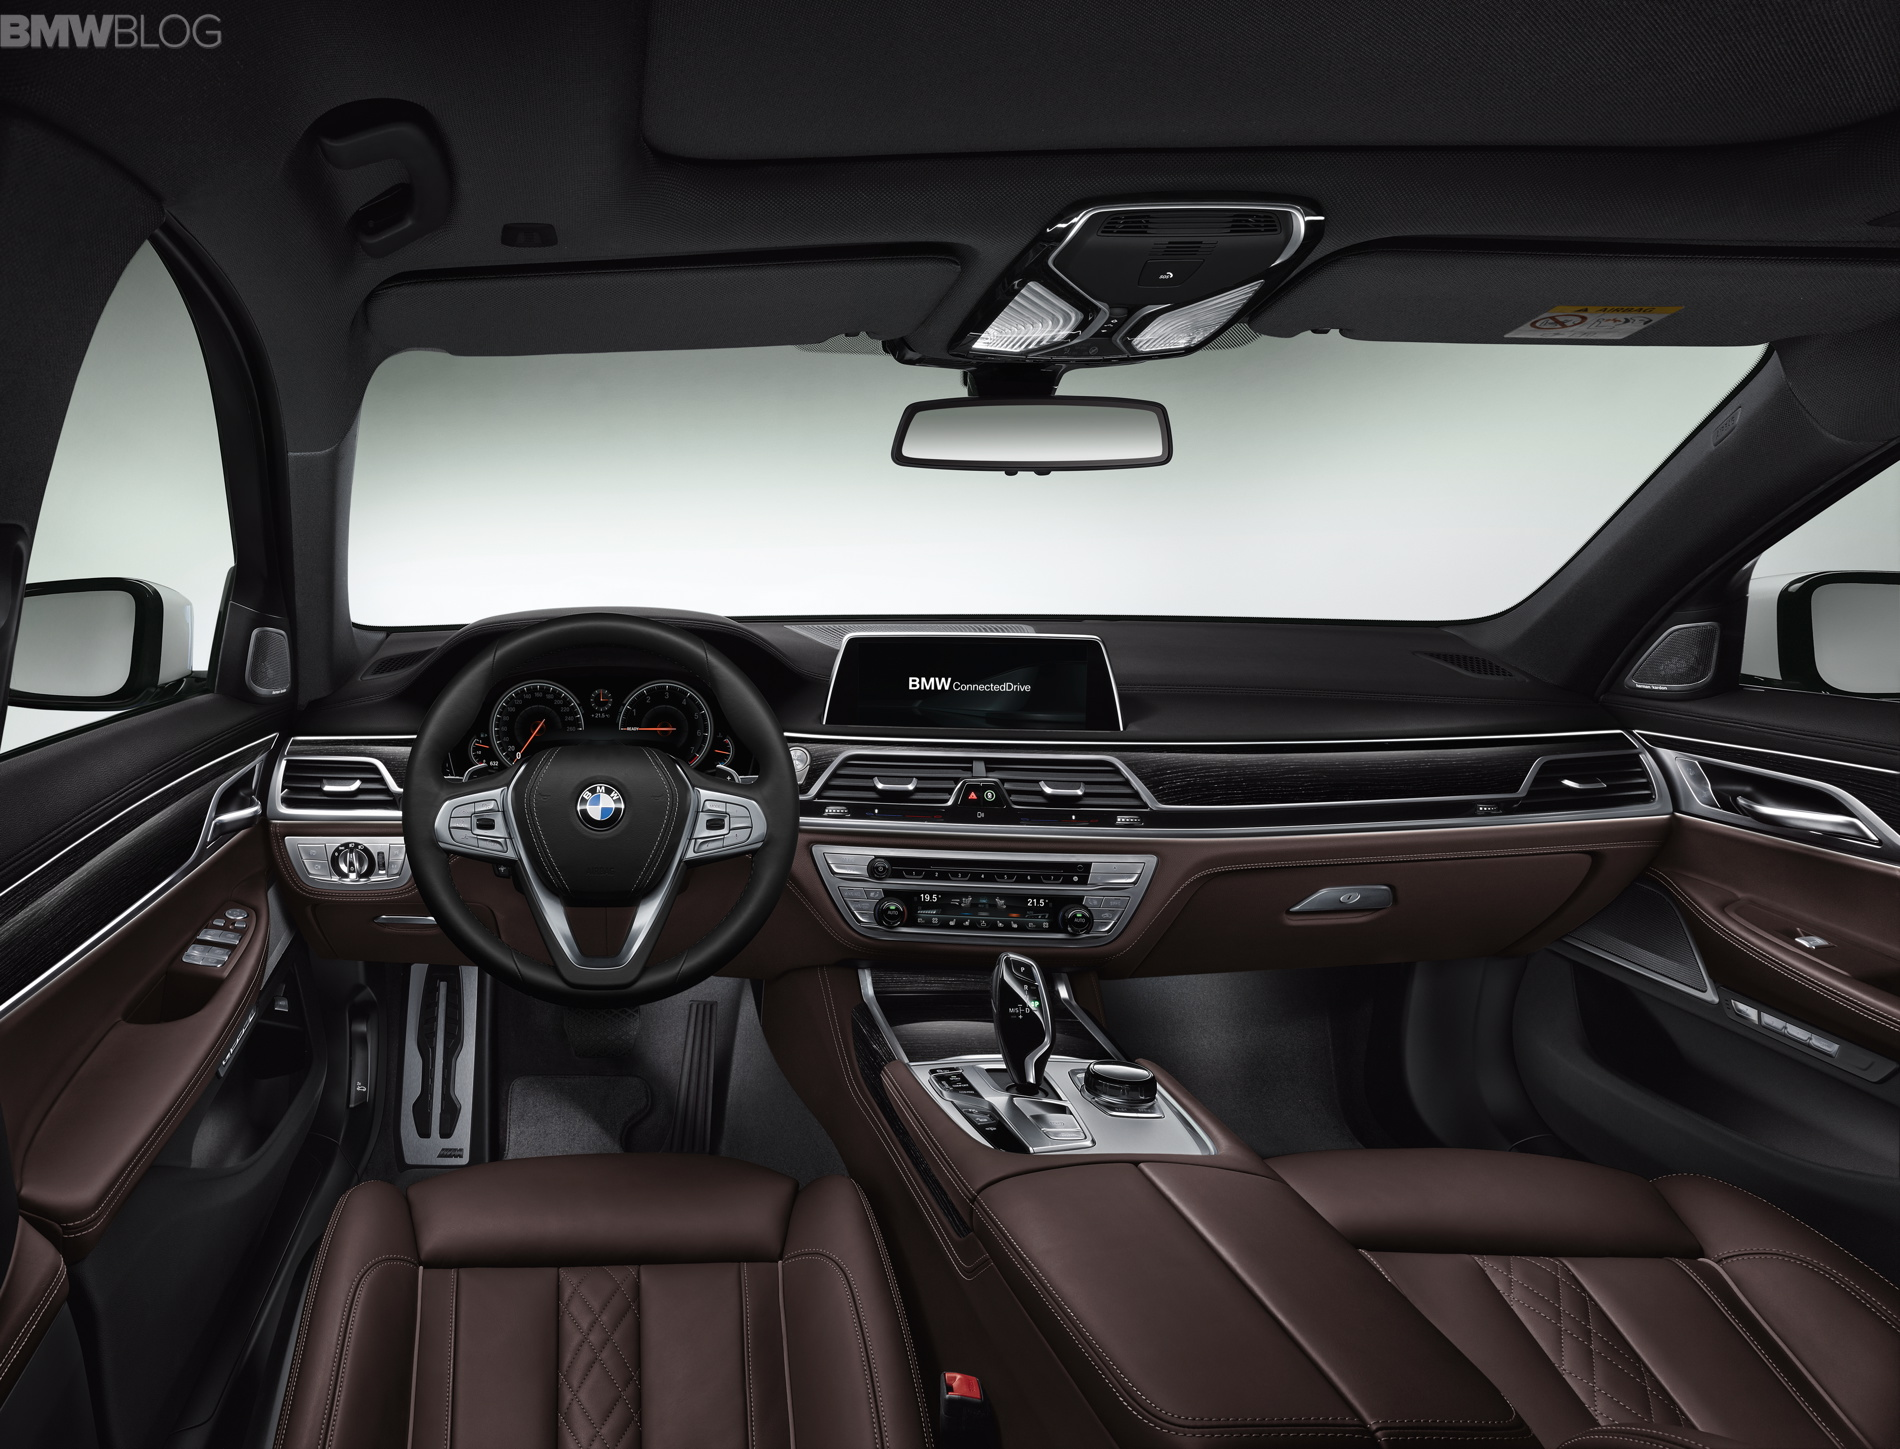 astounding-design-of-the-brown-seats-ideas-with-leather-materials-as-the-bmw-7-series-2015-interior